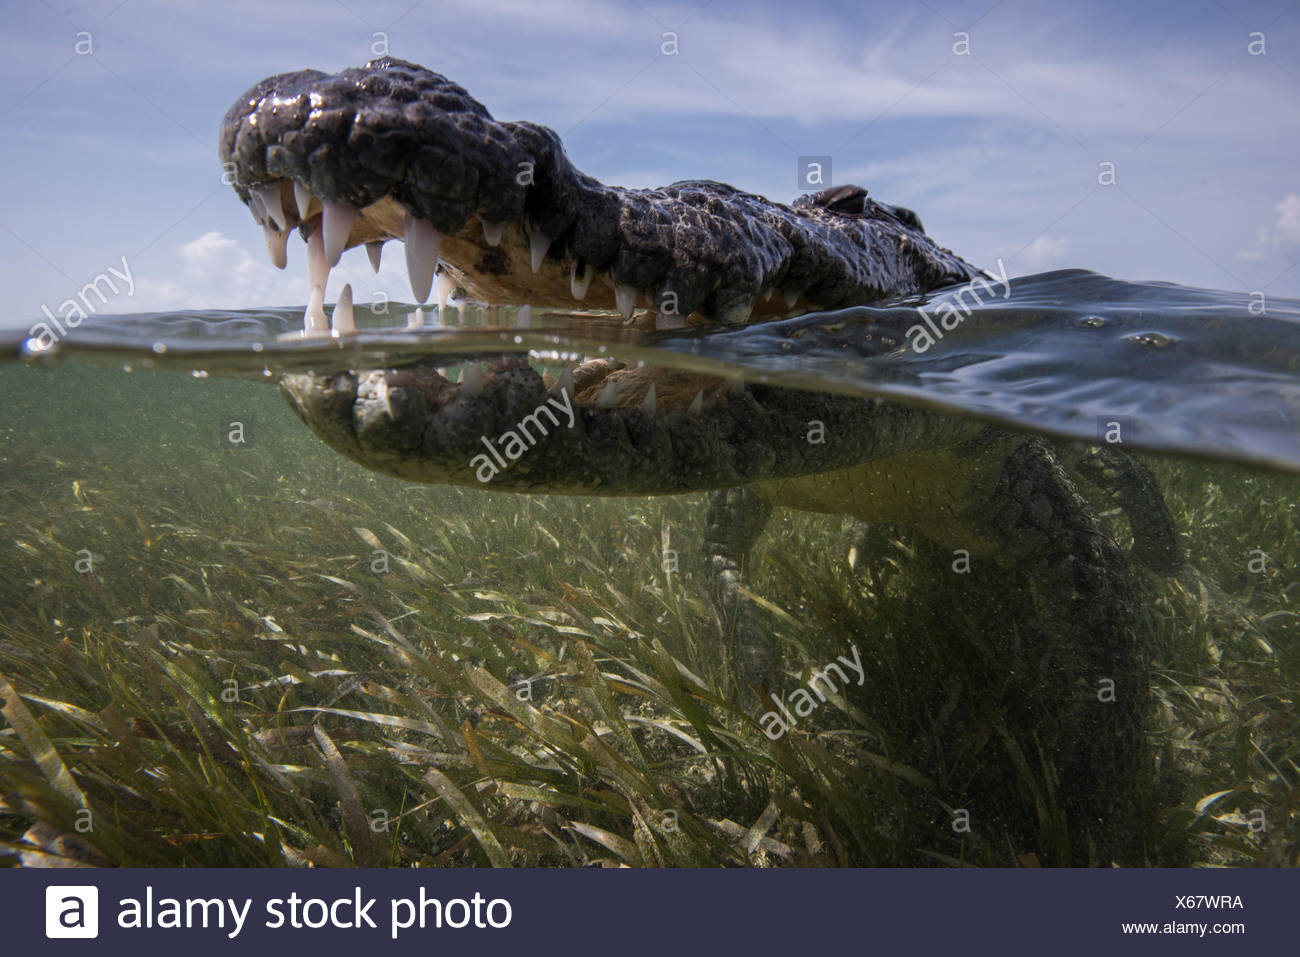 Close up of open mouthed american croc (Crocodylus acutus) at sea surface, Chinchorro Banks, Mexico - Stock Image